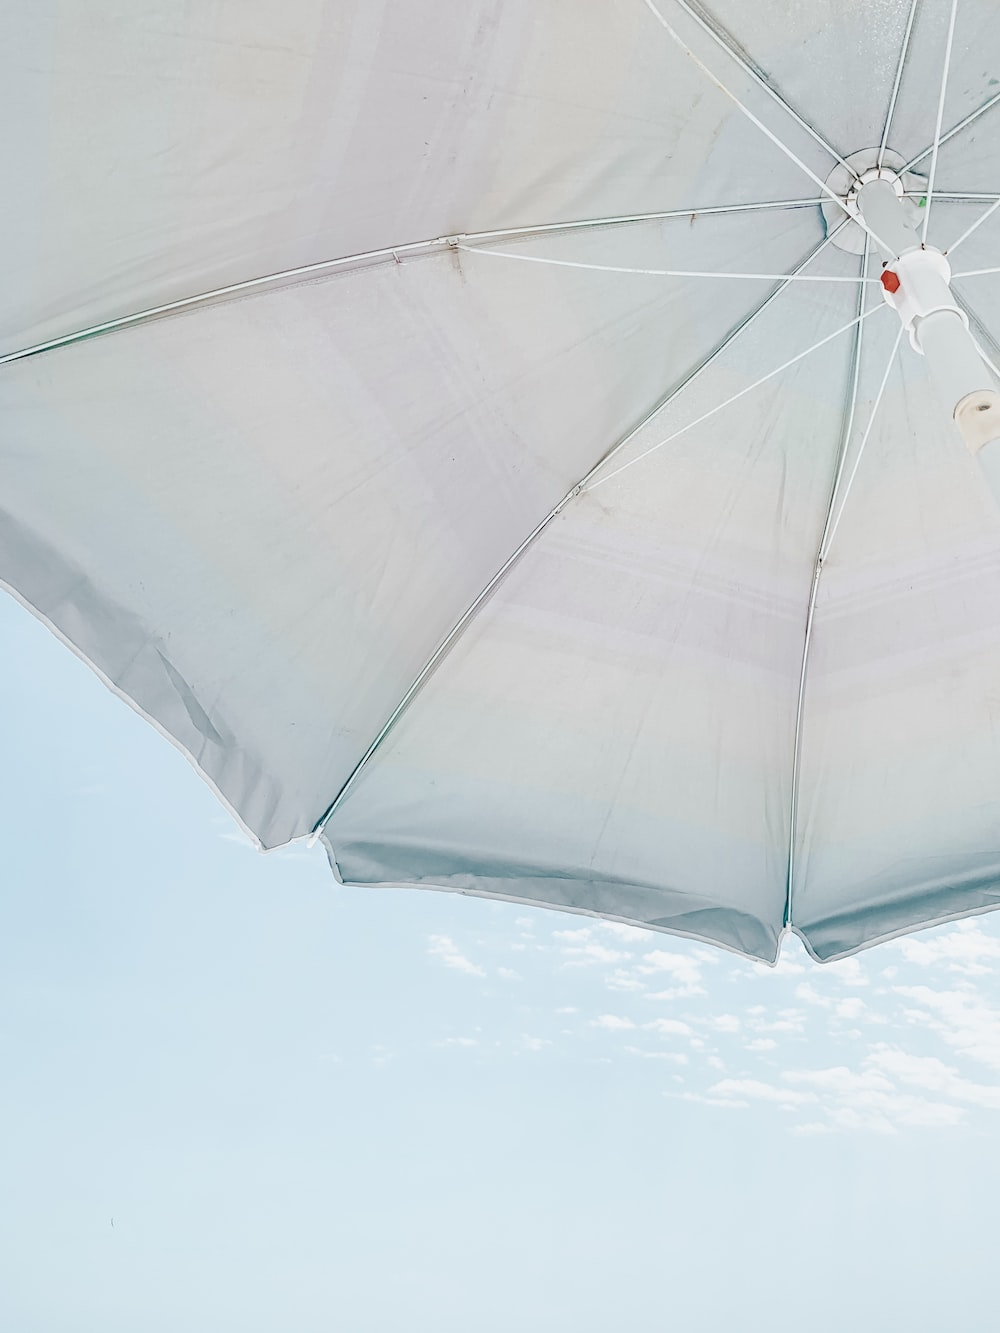 low-angle photography of white parasol